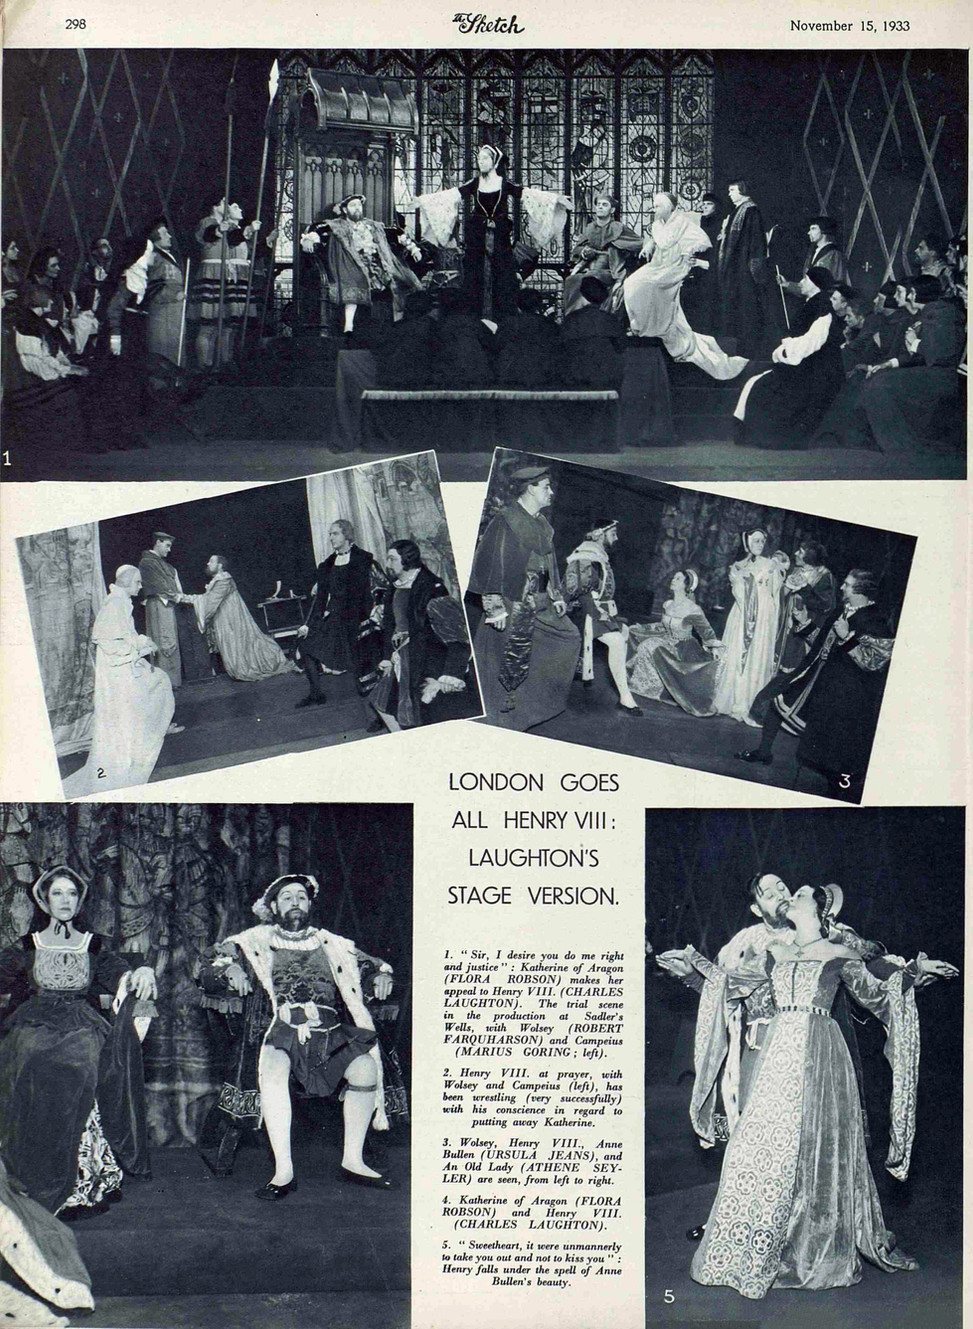 Marius Goring as Cardinal Campeius in Tyrone Guthrie's production of Shakespeare's Henry VIII at the Sadler's Wells Theatre. The Sketch 15 November 1933